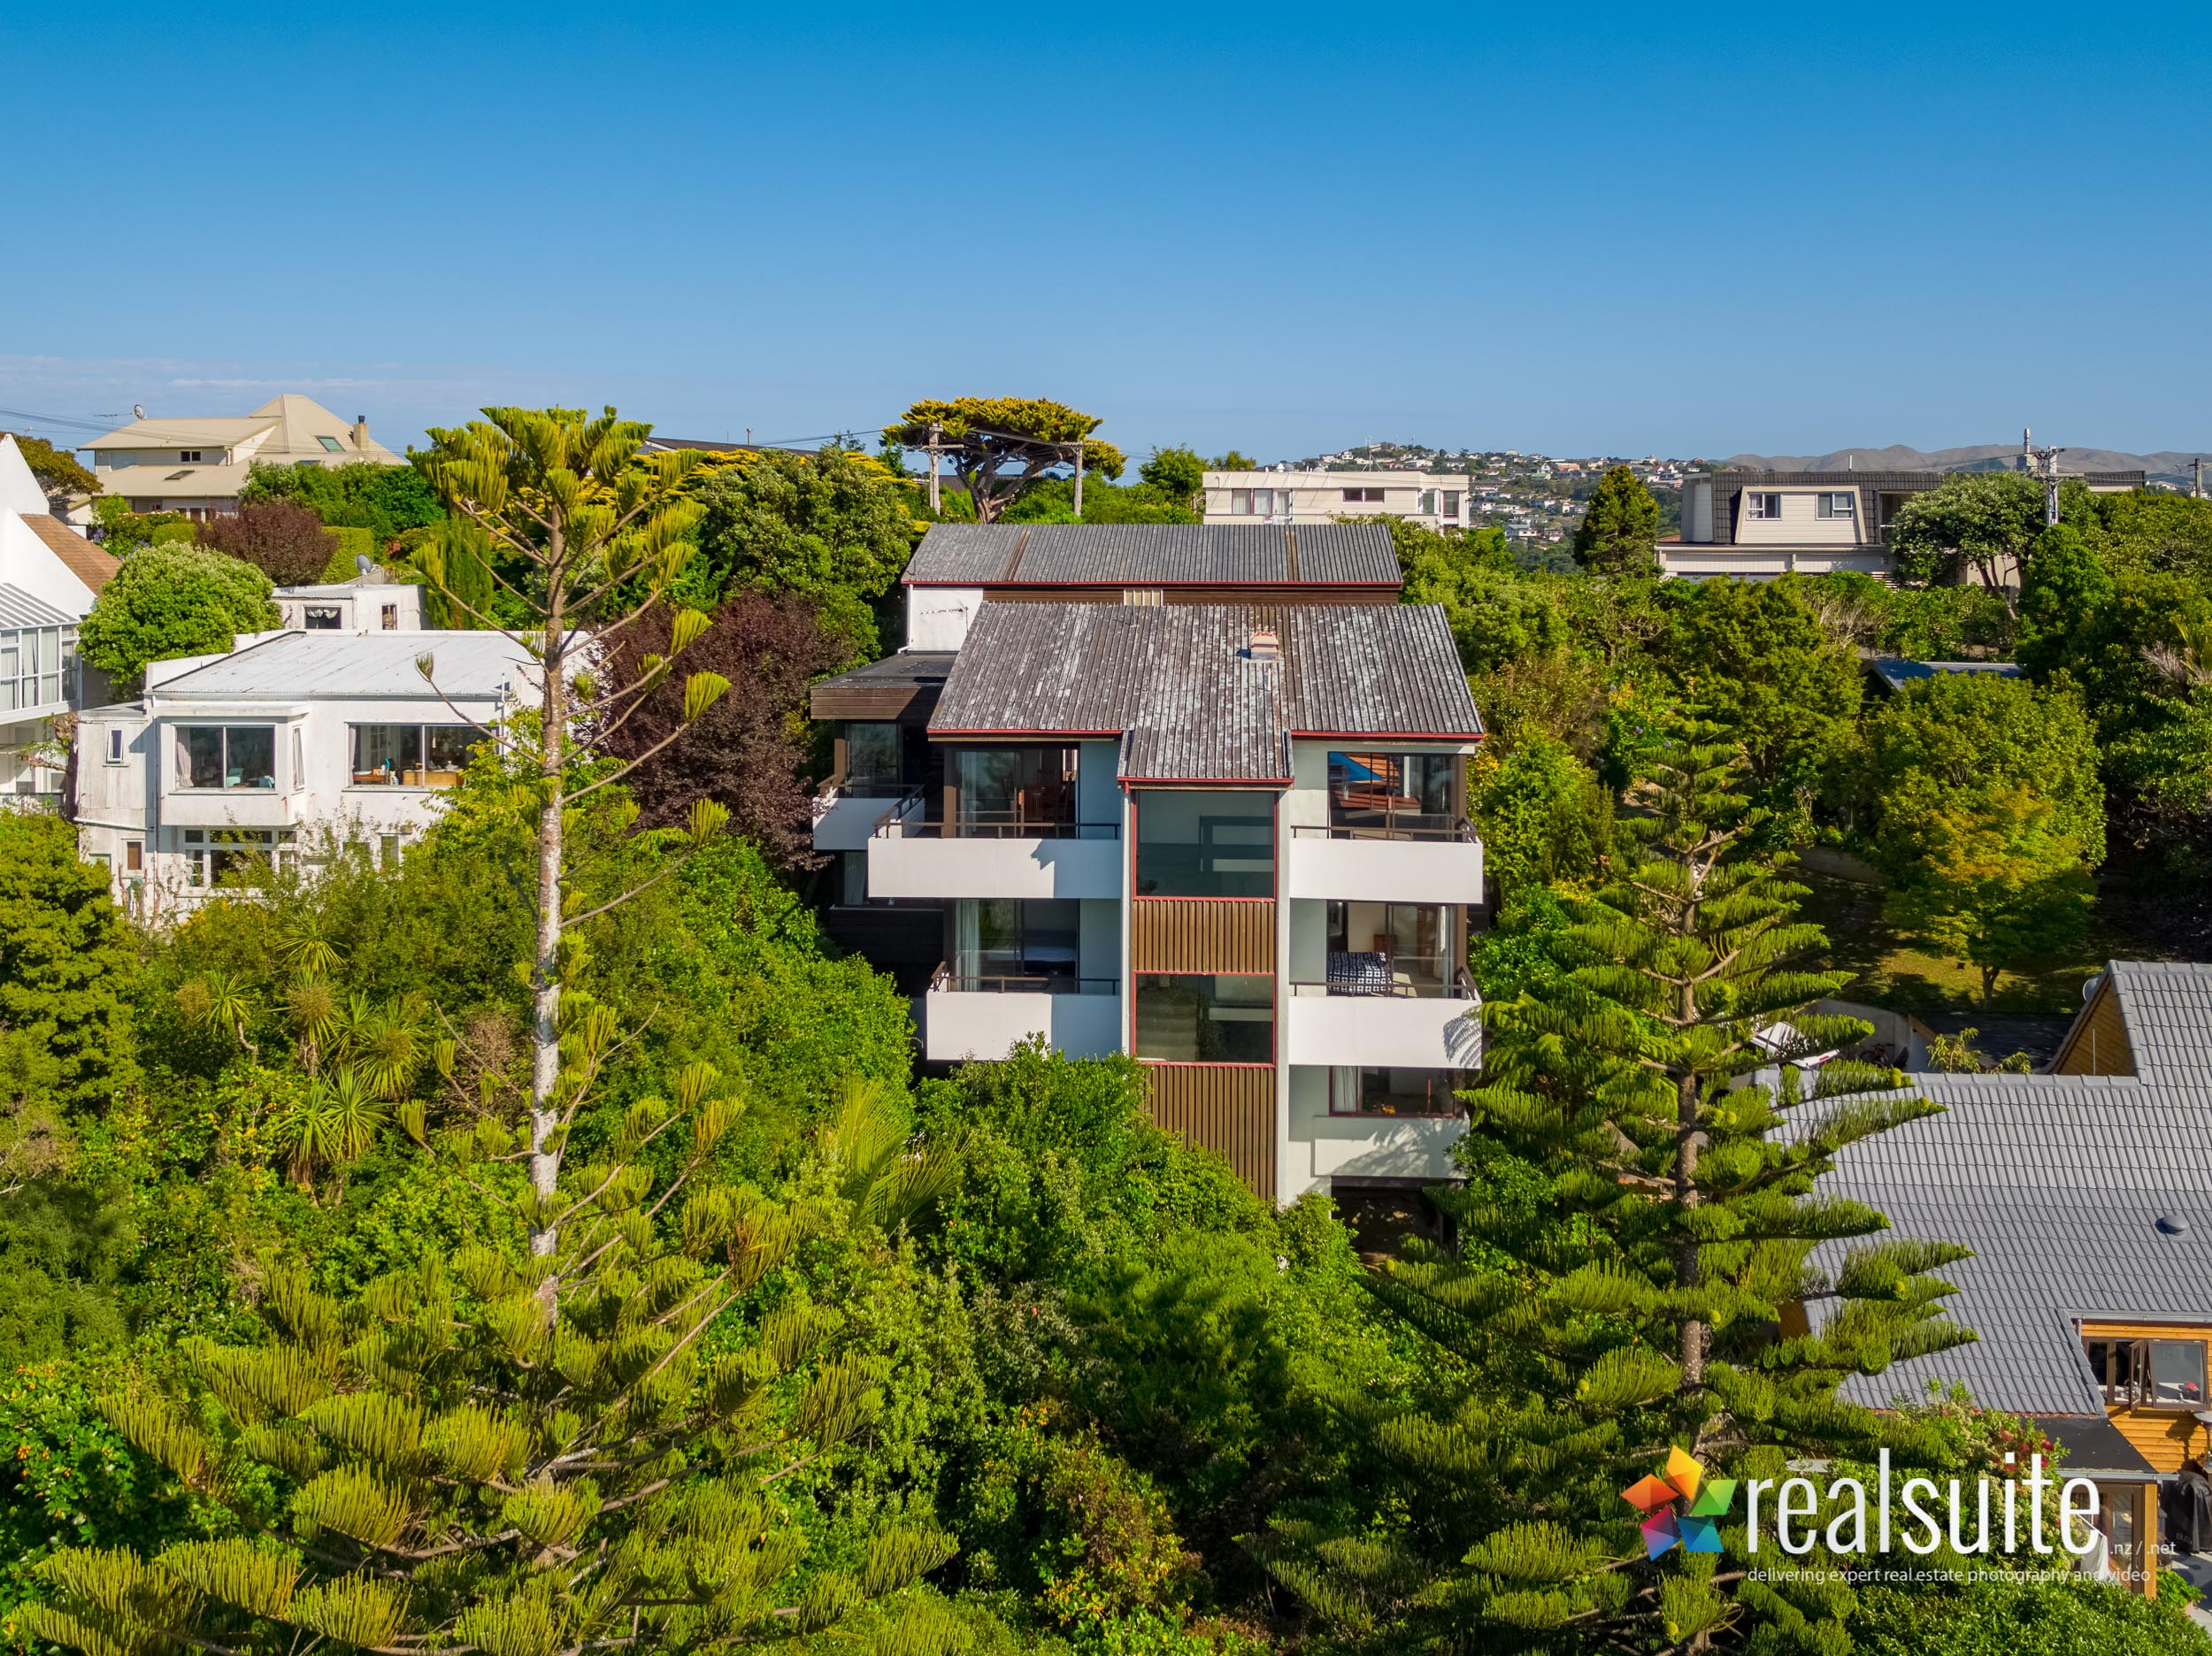 66 Seaview Road, Paremata, Aerial 0004